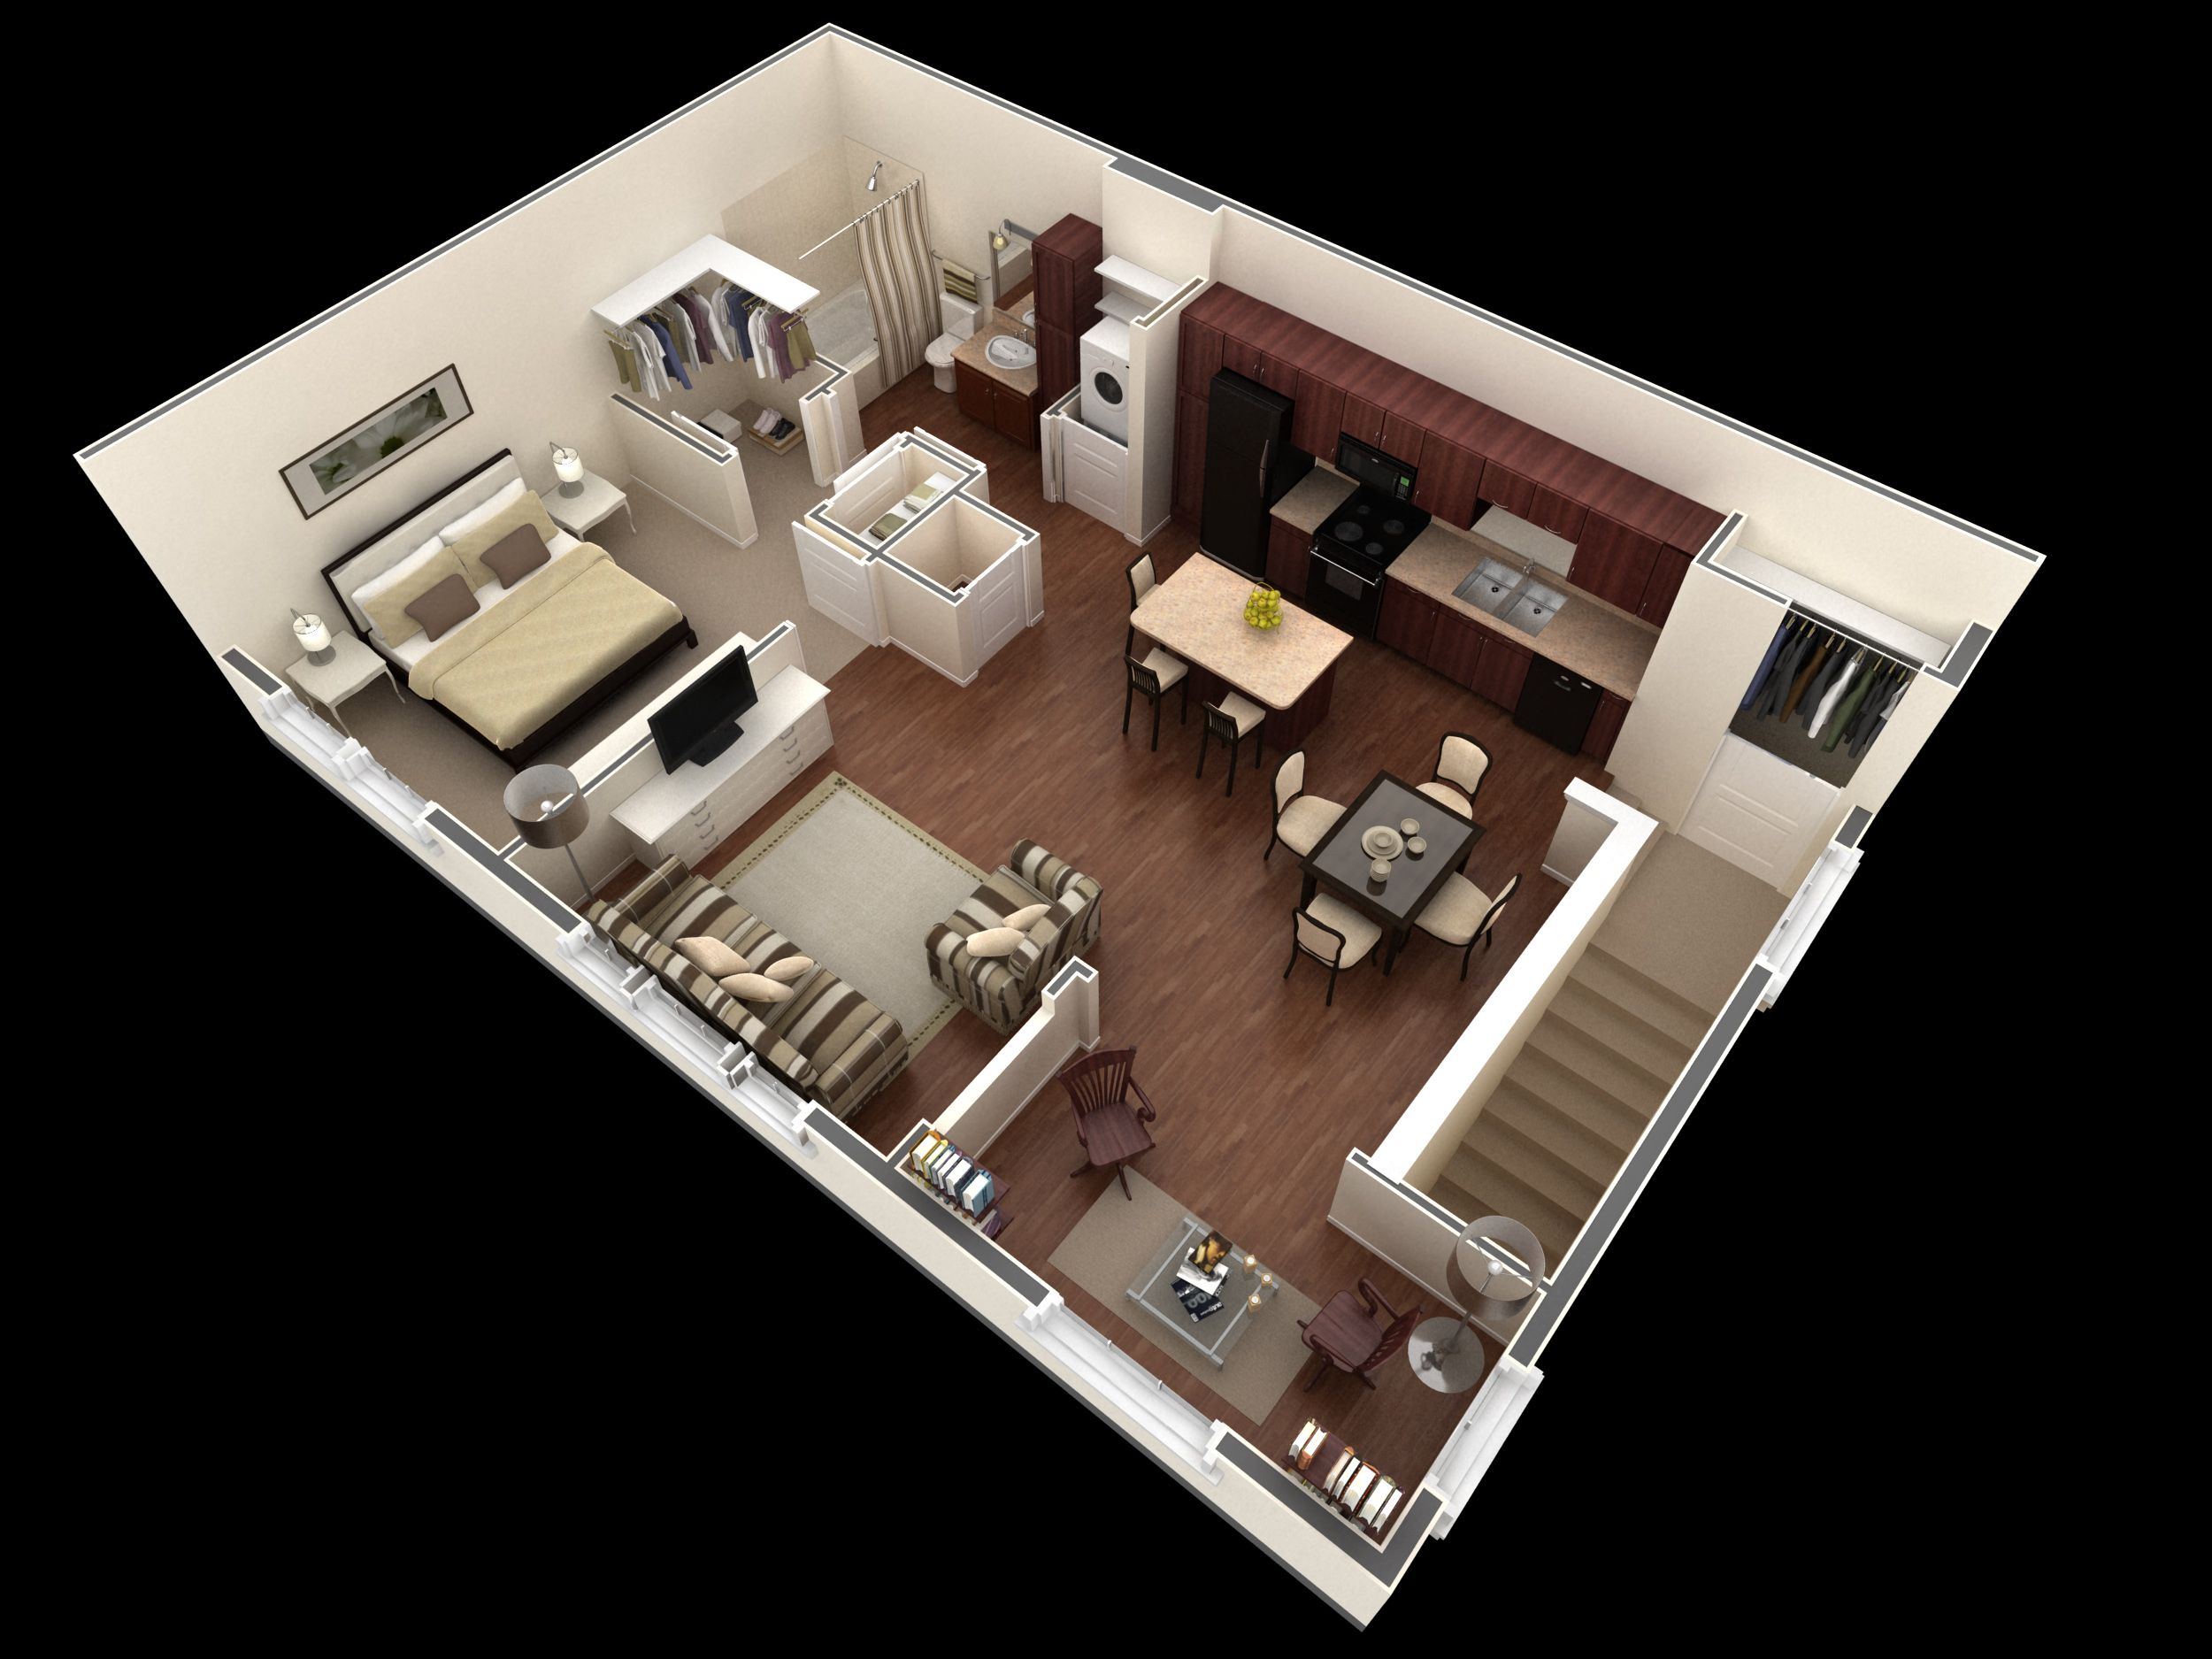 1 Bedroom 1 Bath 932 Sf Apartment At Springs At Legacy Commons In Omaha Ne This Apartment Comes With 2 Small House Design House Floor Plans Home Design Plans